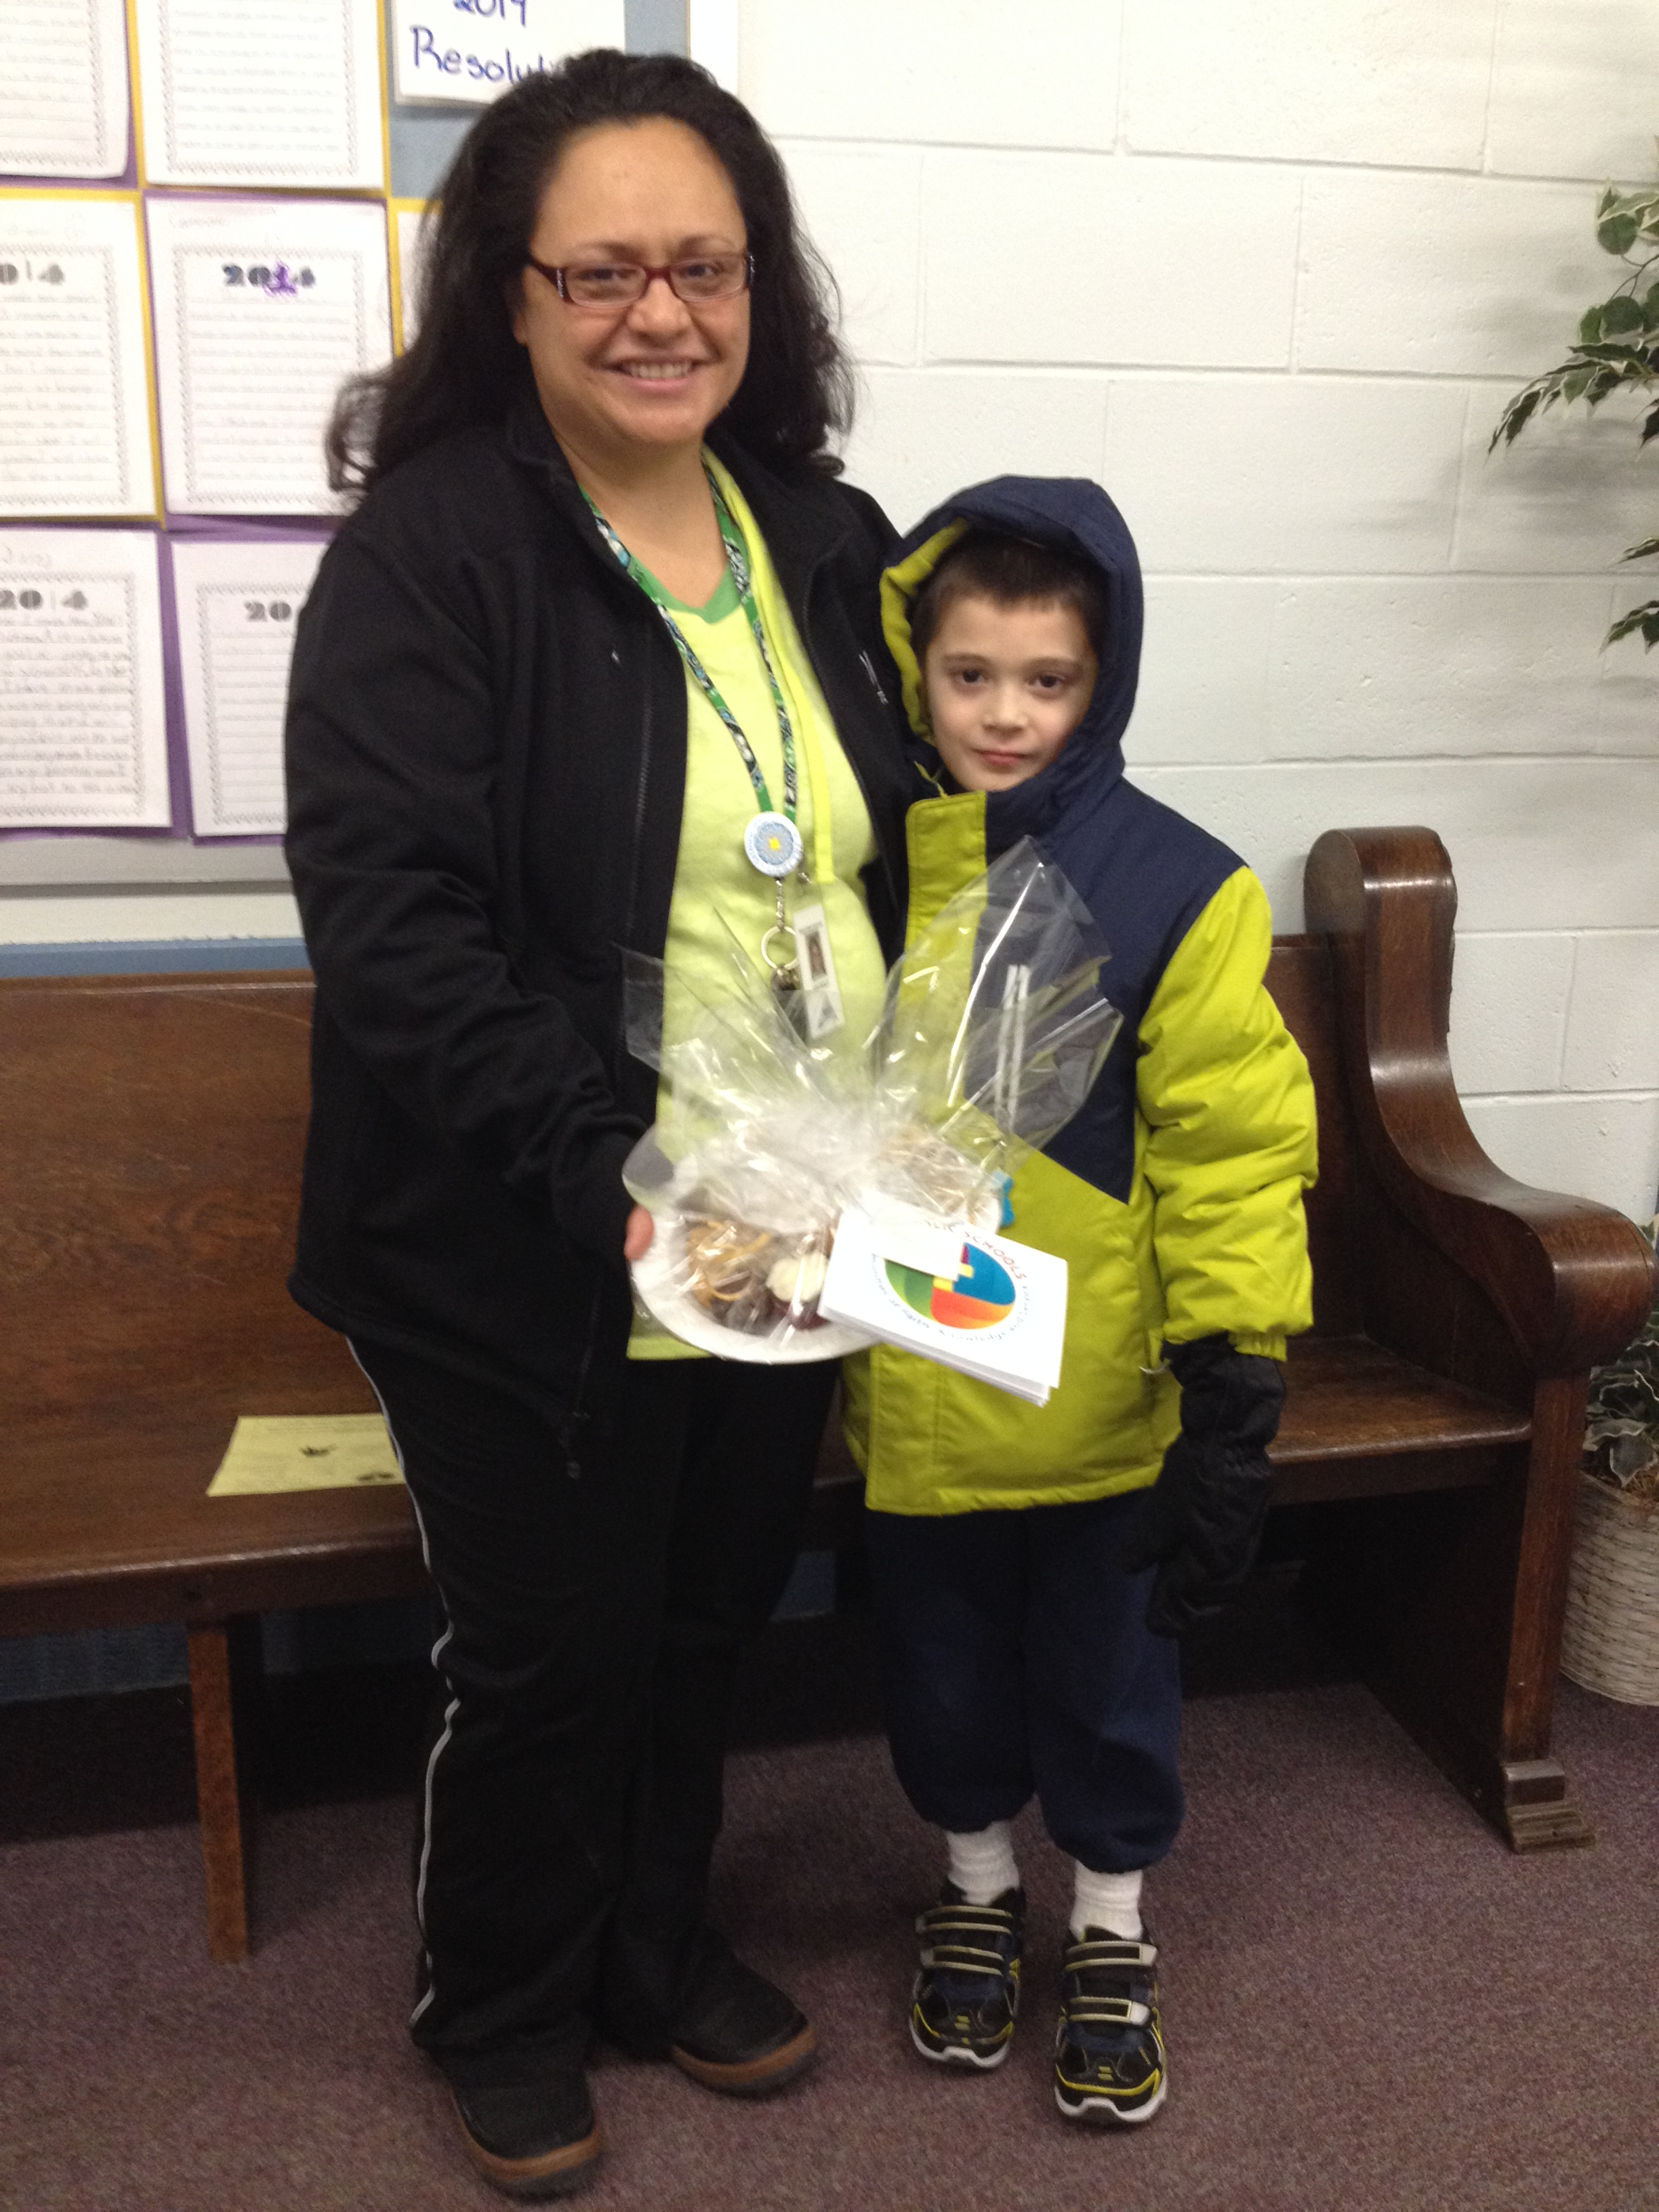 St. Mary's School Gives Back During Catholic Schools Week